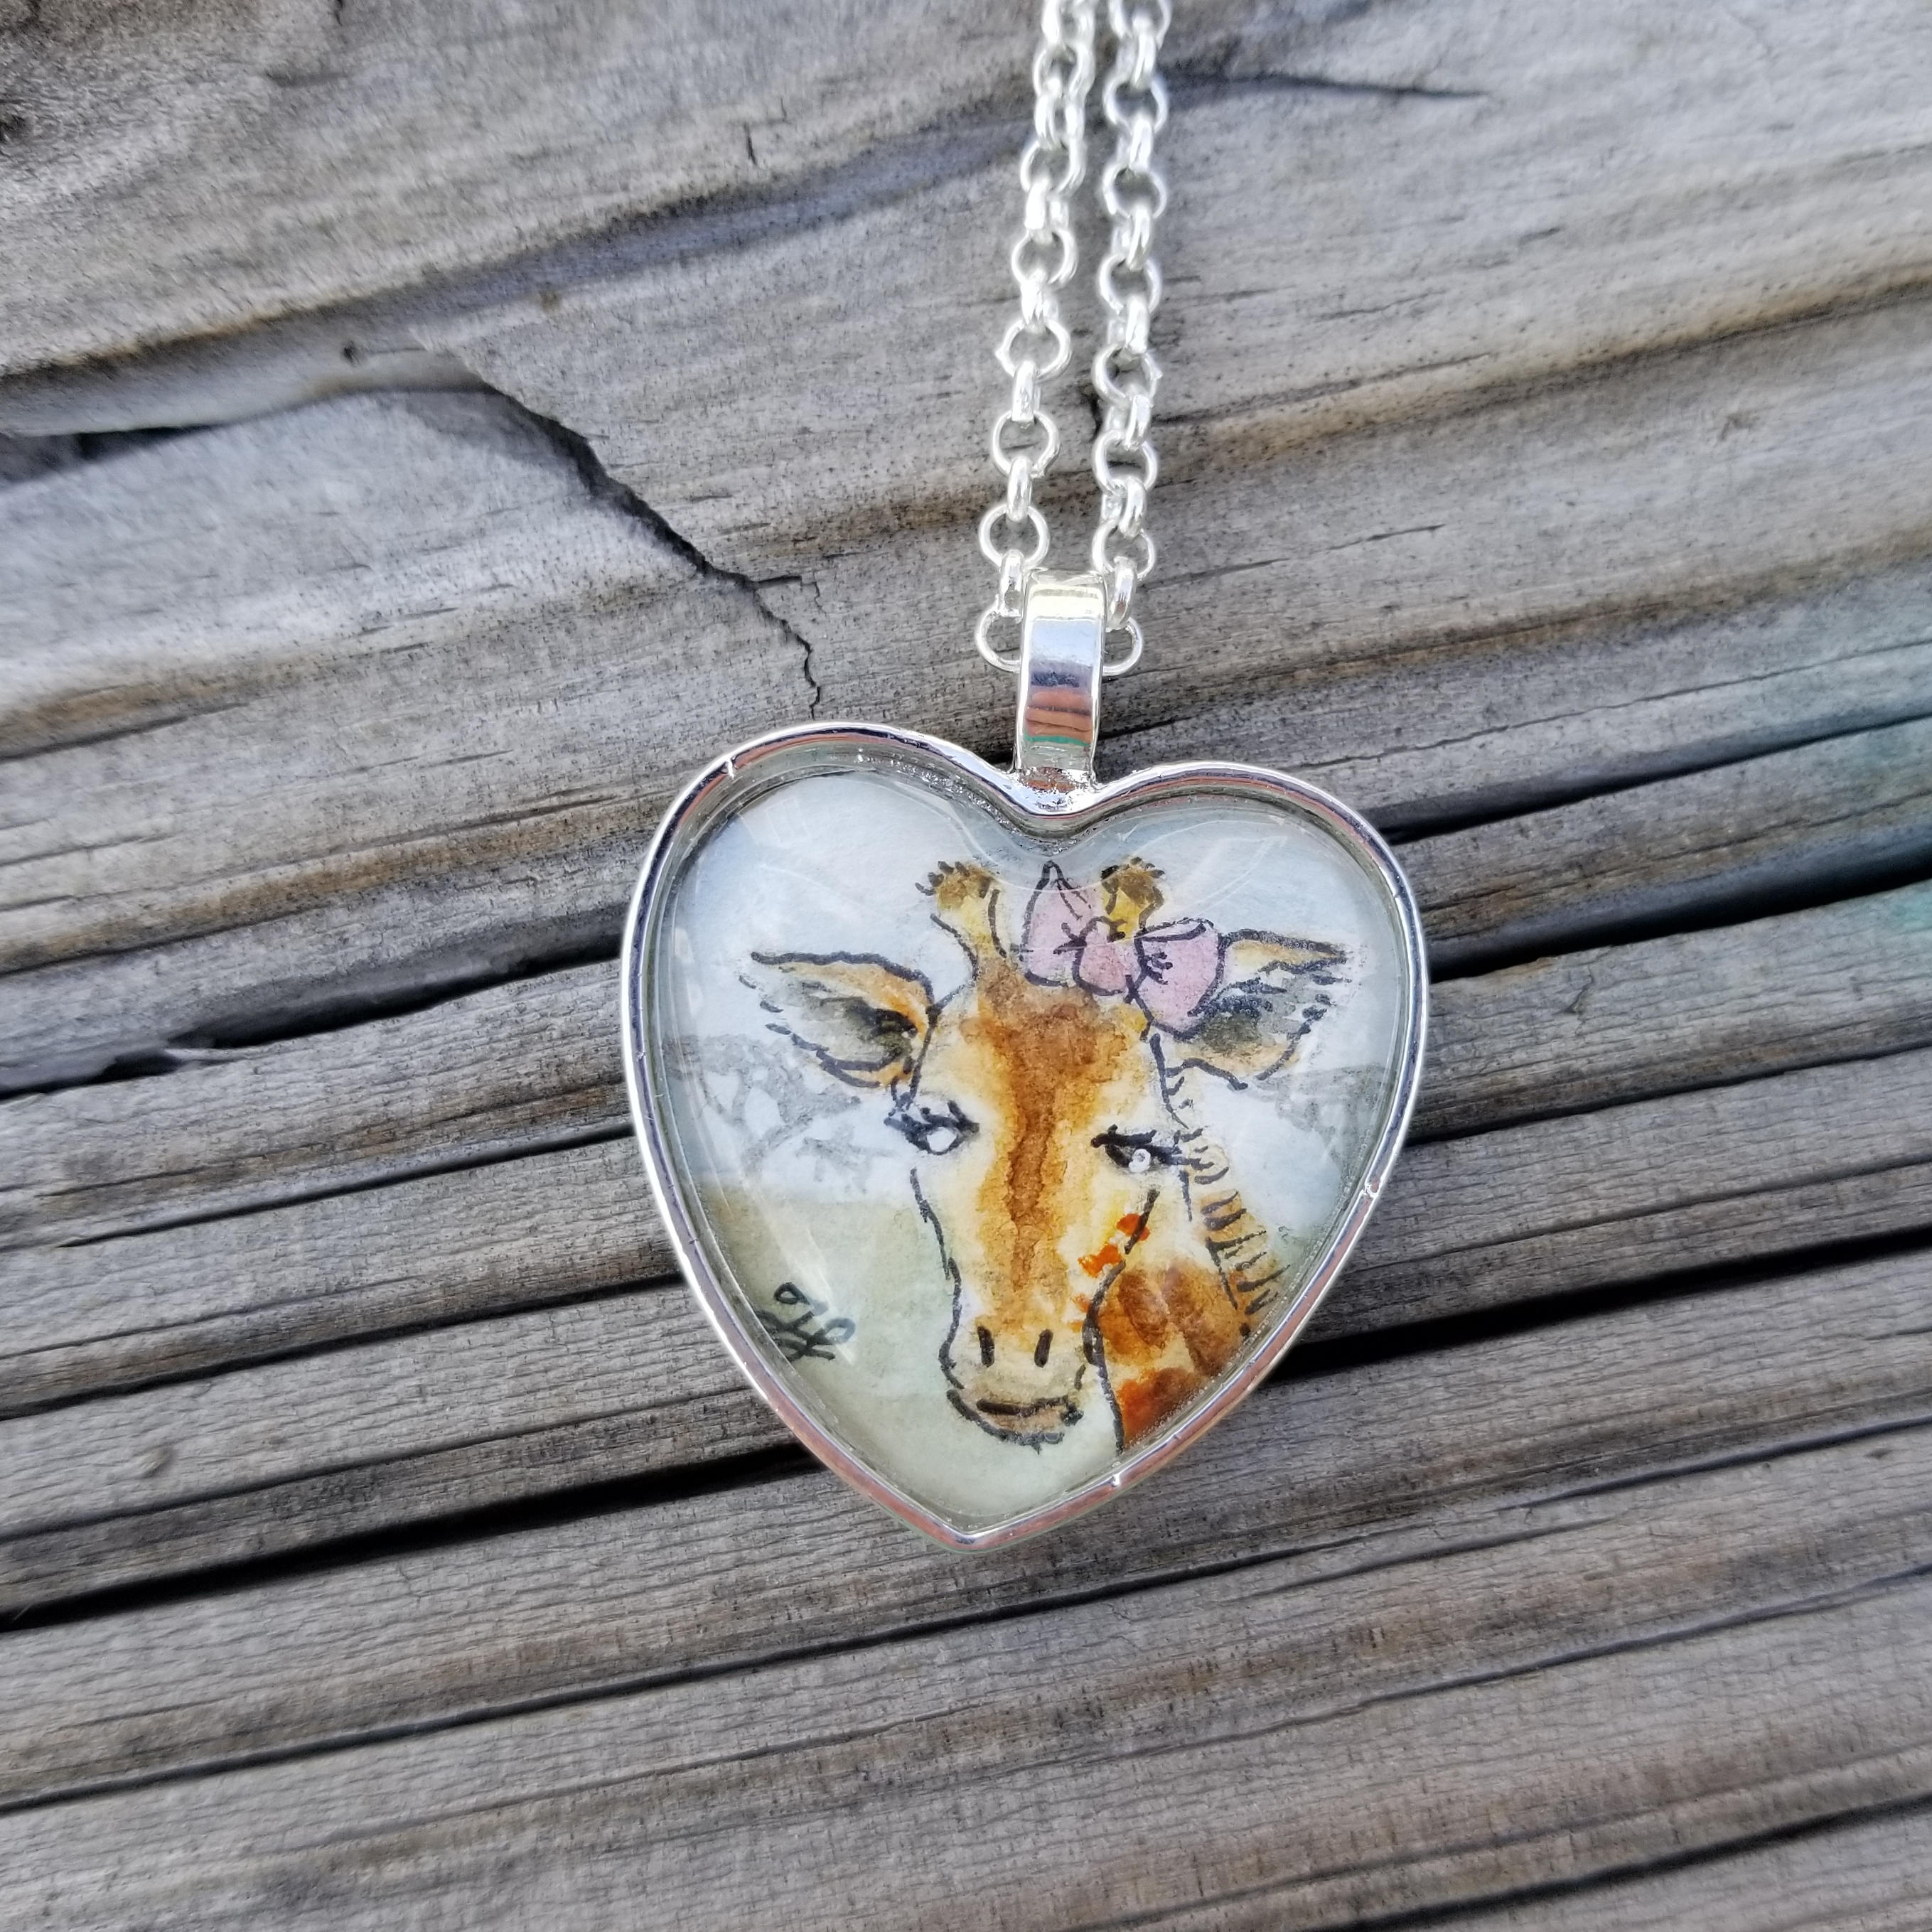 Giraffe Necklace, Hand-painted one-of-a-kind miniature giraffe illustration, watercolor and ink giraffe with pink bow in heart